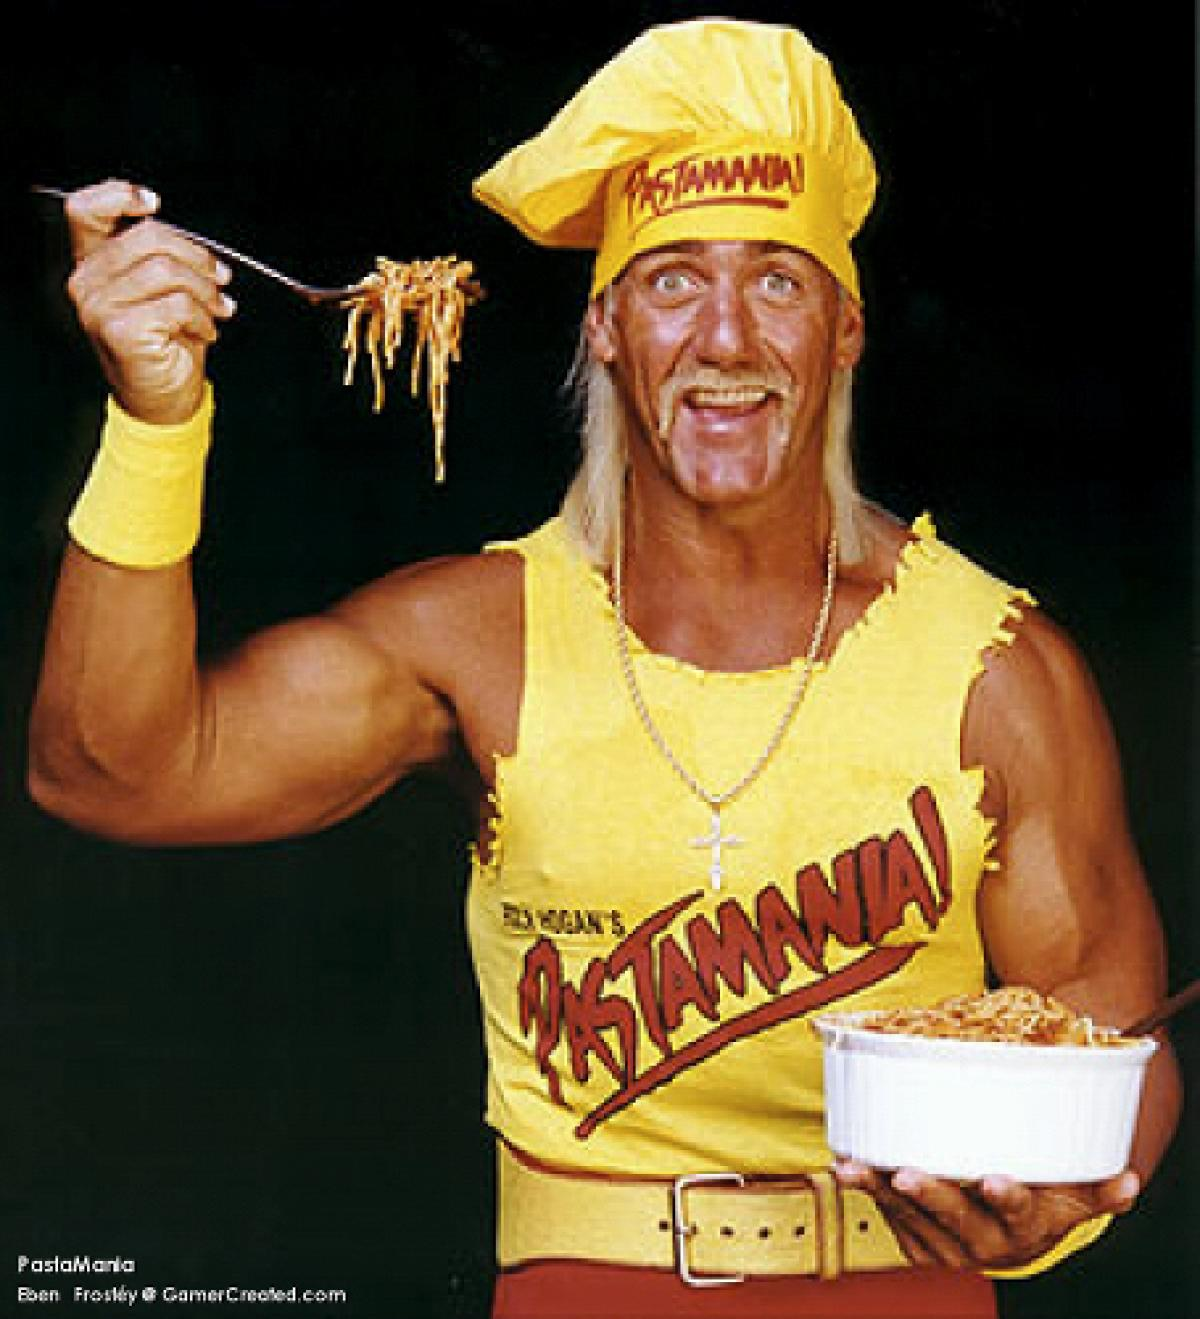 Happy Birthday to Hulk Hogan who turns 64 today!